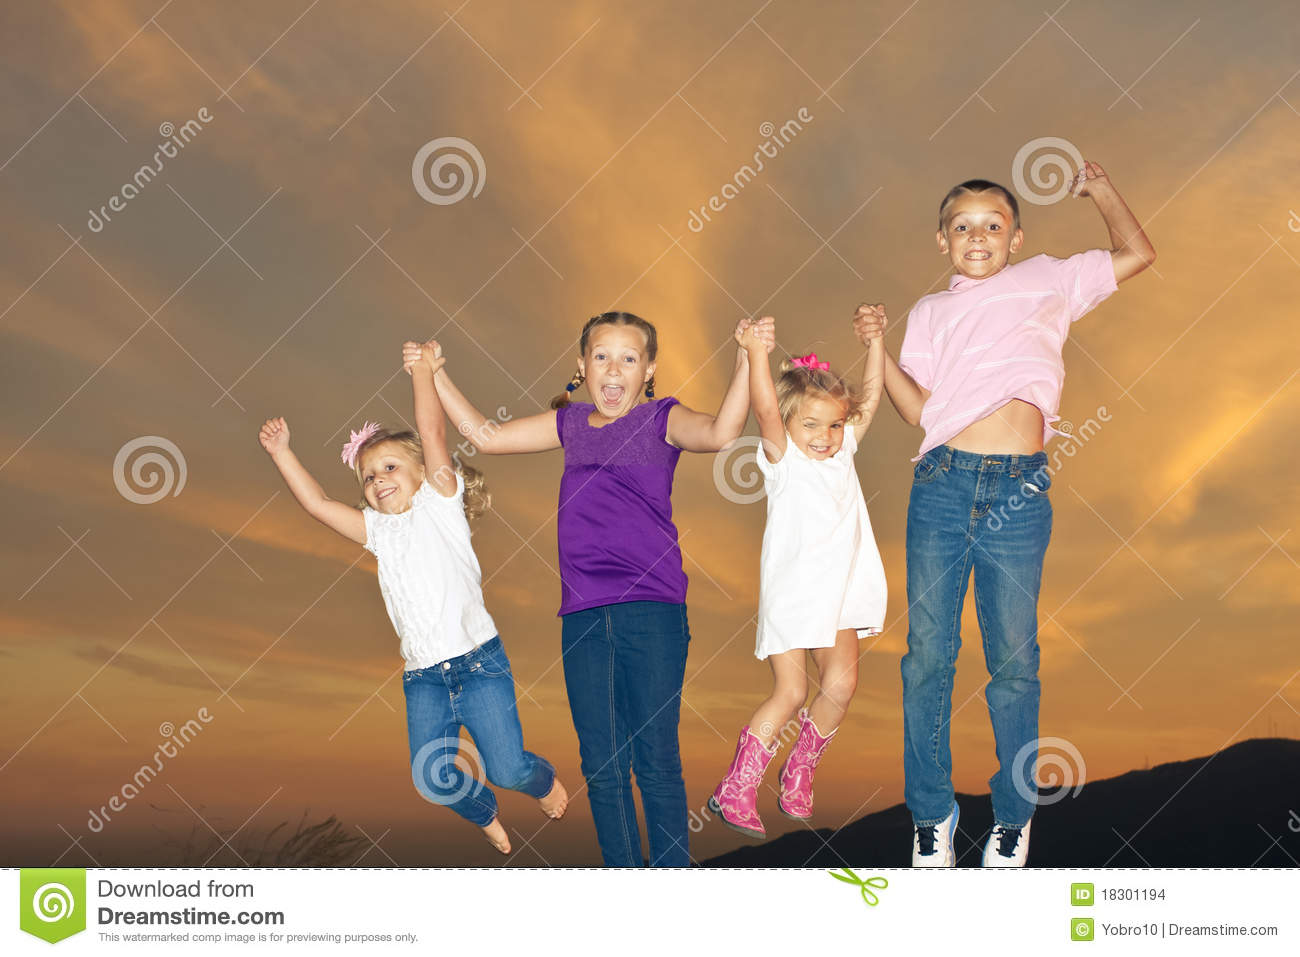 Four young children having fun together and jumping in the air